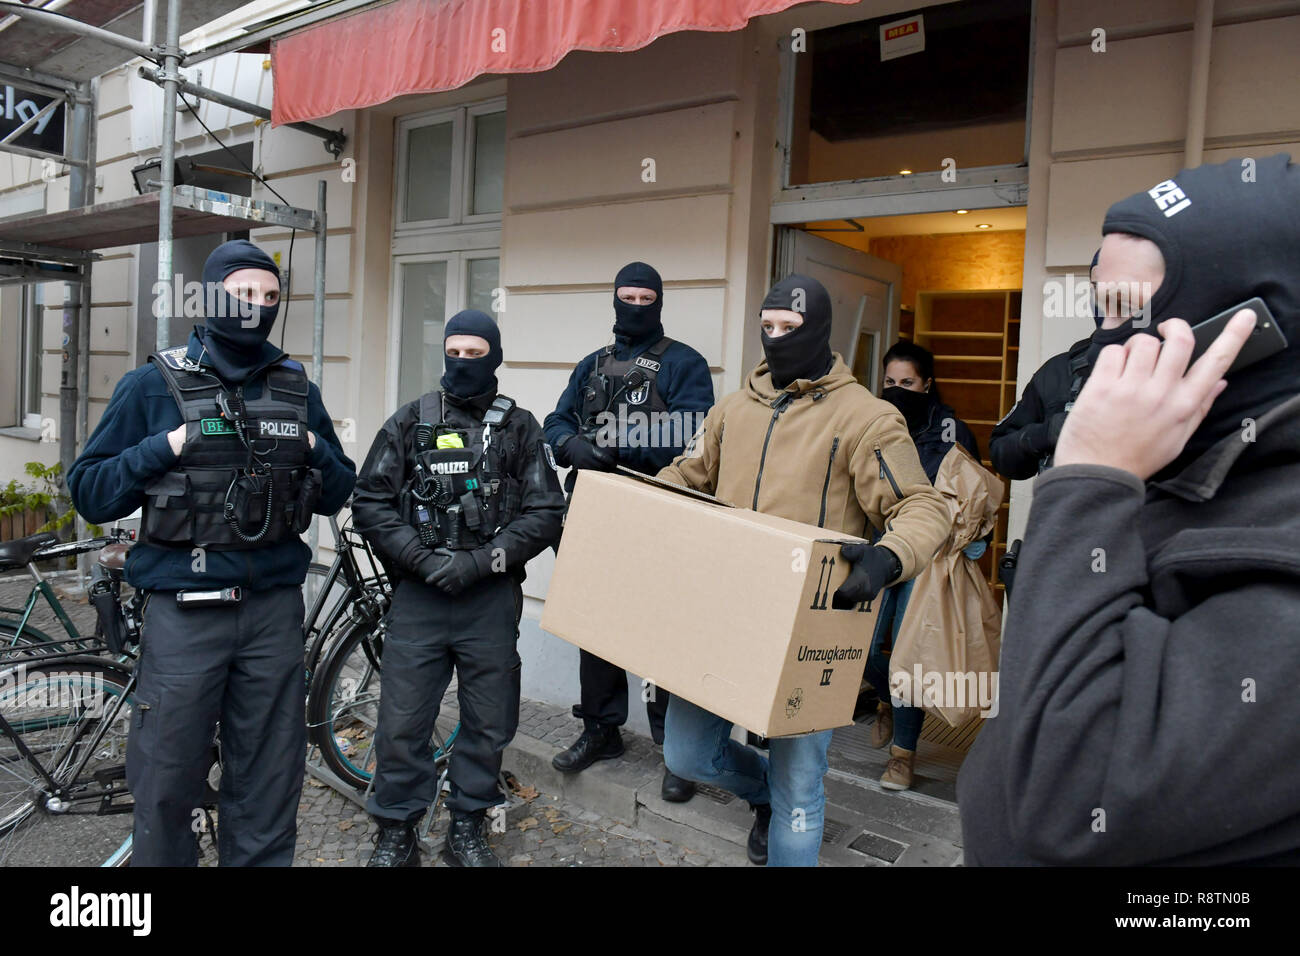 Berlin, Germany. 18th Dec, 2018. Policemen leave a mosque with a cardboard box. In Berlin, investigators search rooms of a mosque and other objects. This concerns the suspicion of terrorist financing. Credit: Paul Zinken/dpa/Alamy Live News - Stock Image